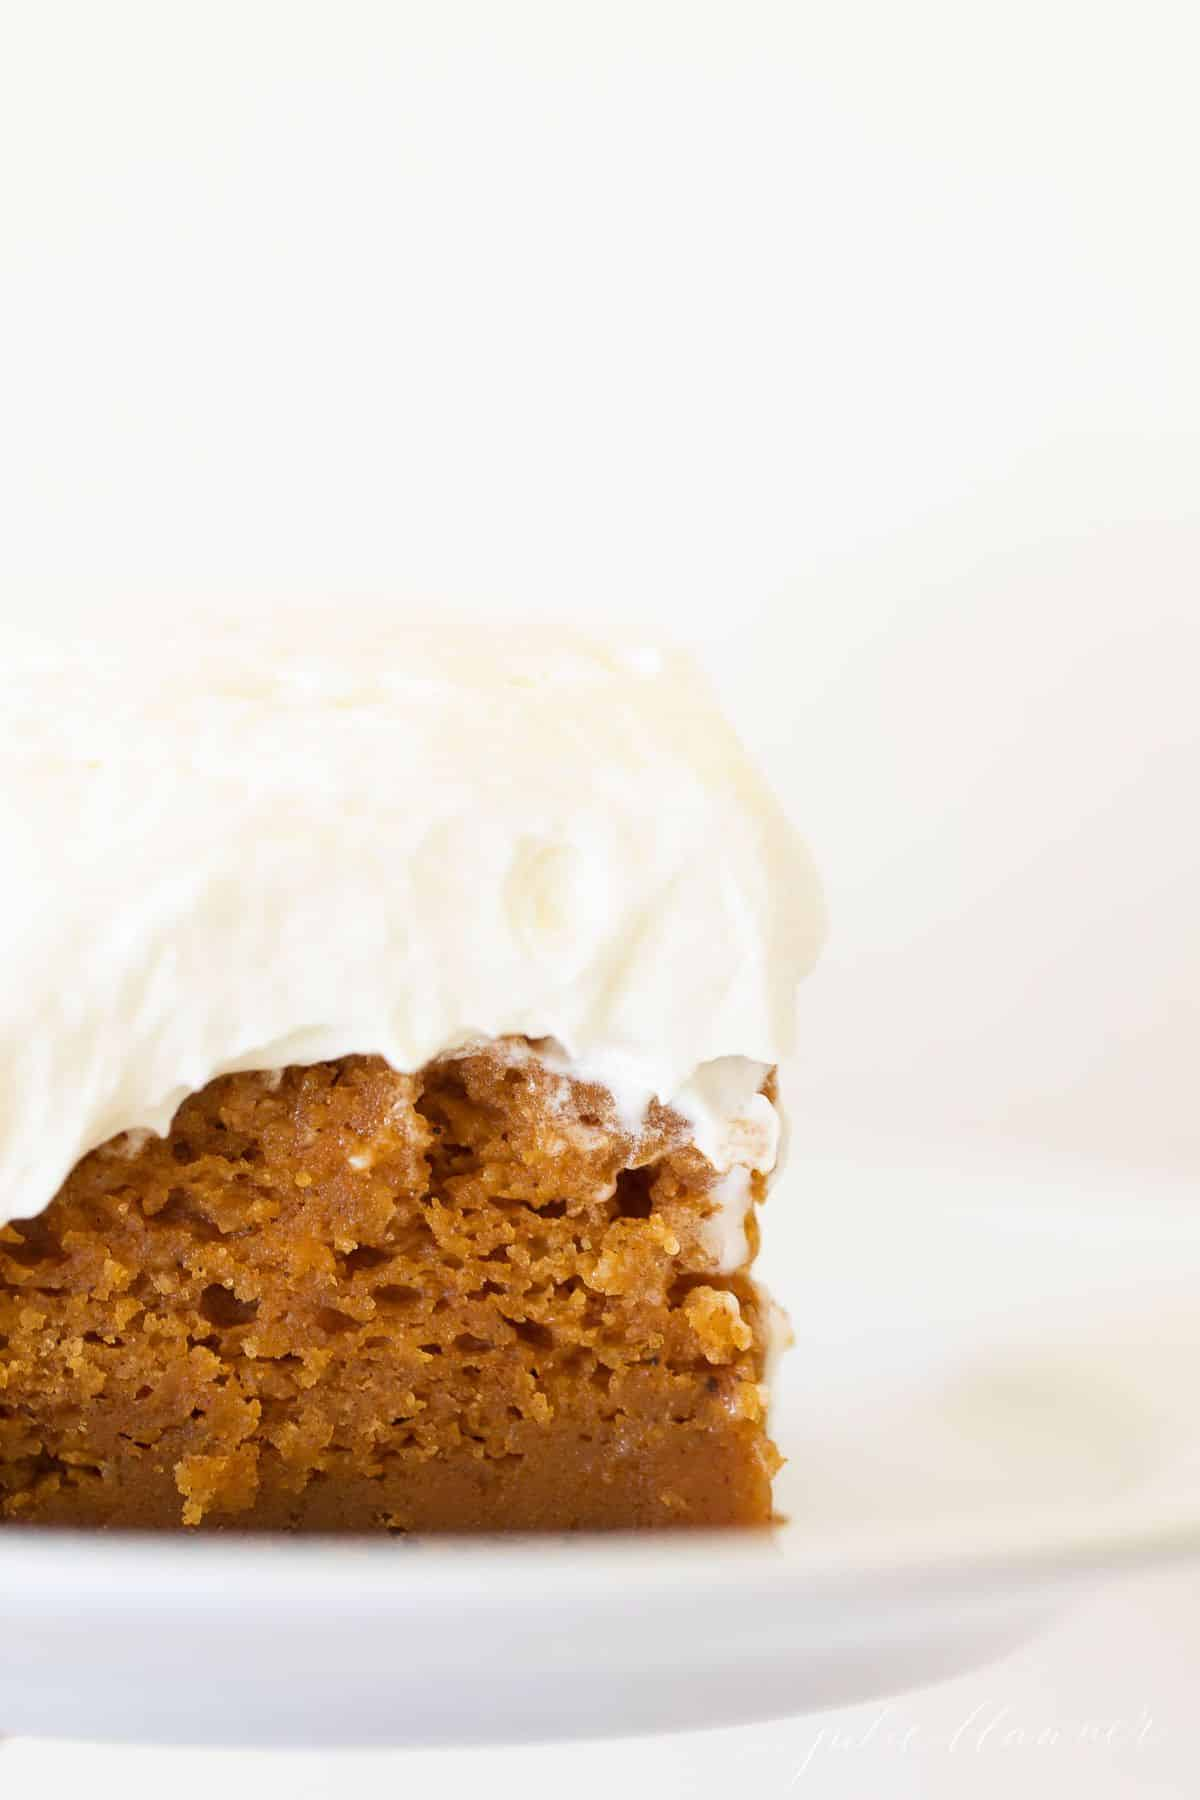 A piece of cake, frosted with fluffy cream cheese frosting on a white background.